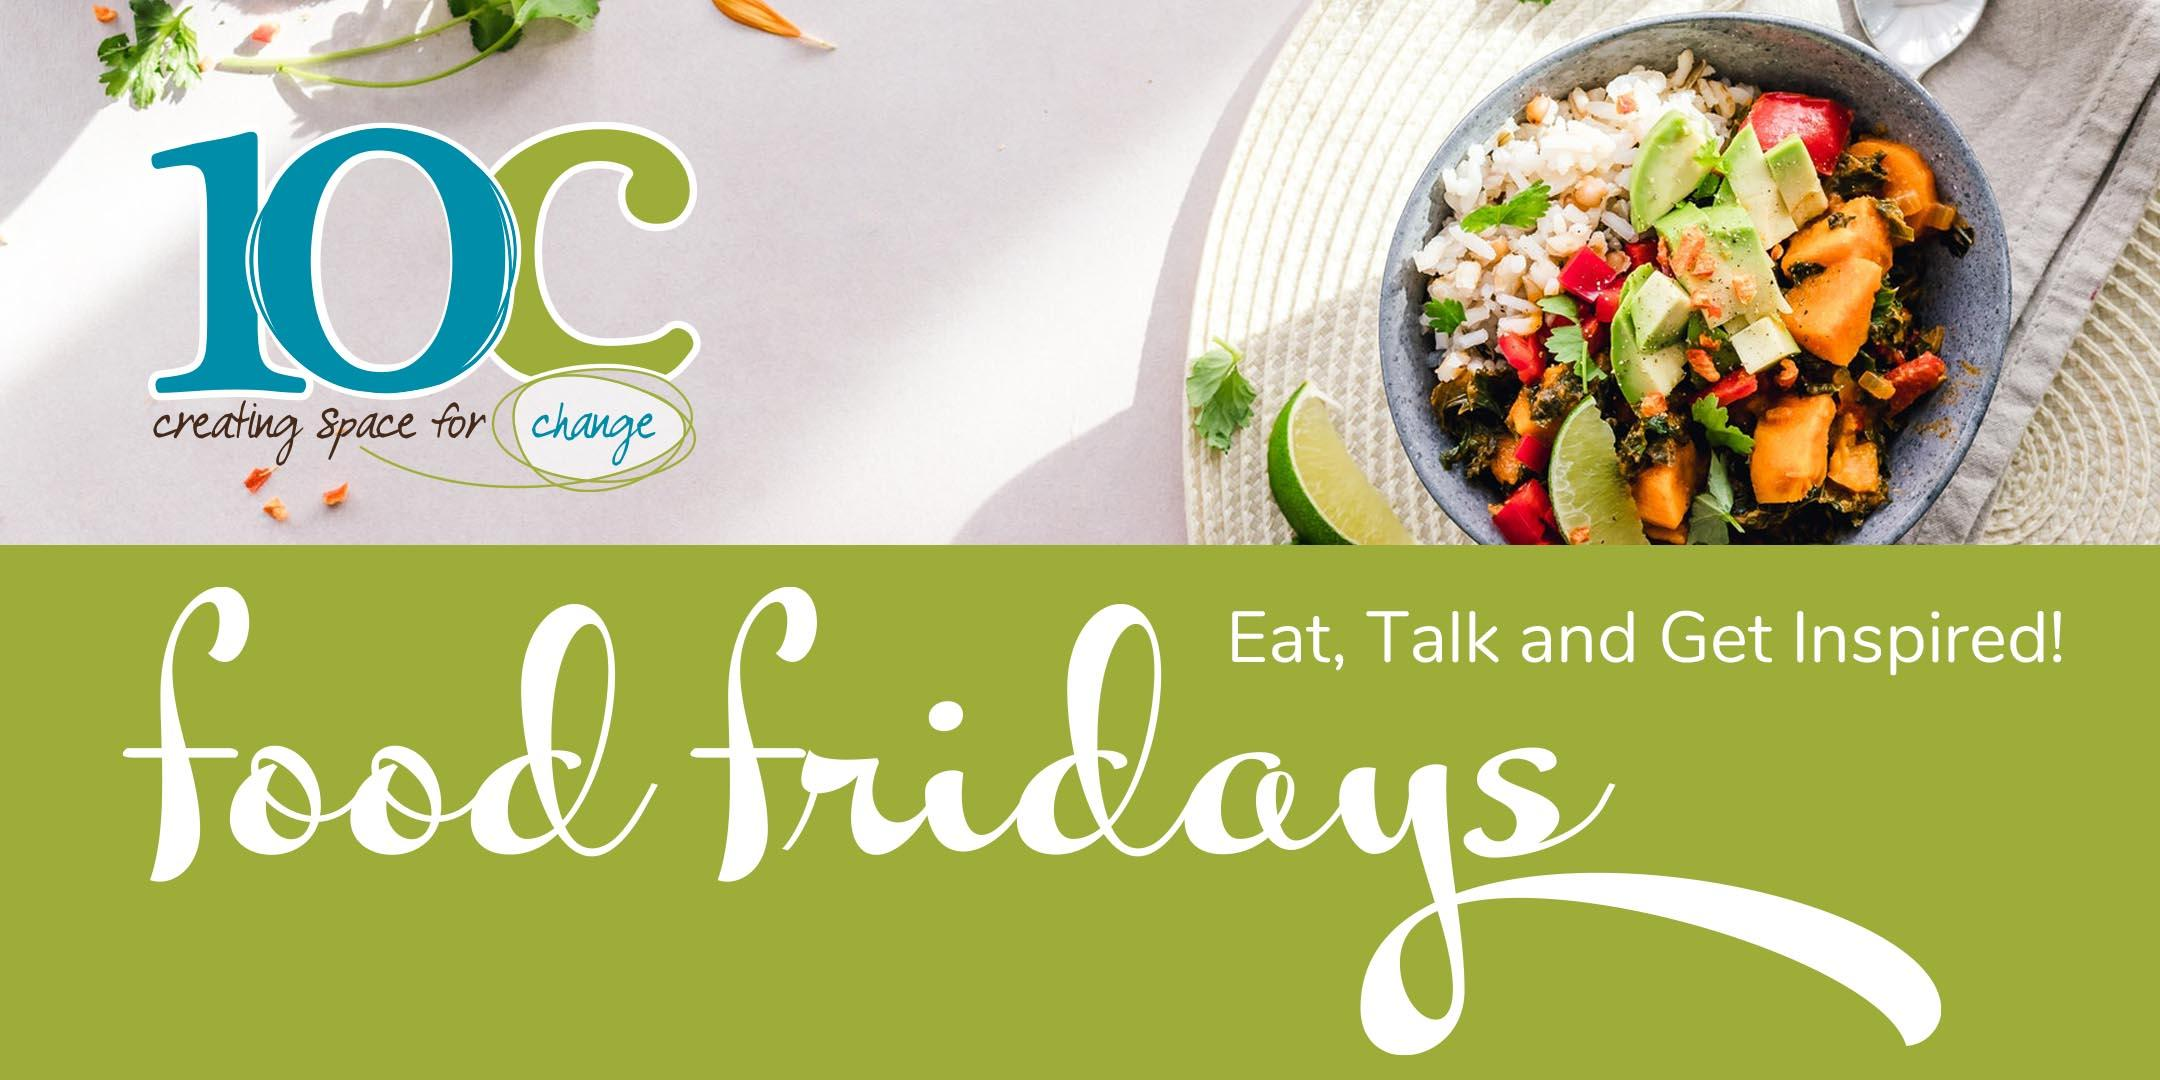 Food Fridays - Eat, talk and get inspired!